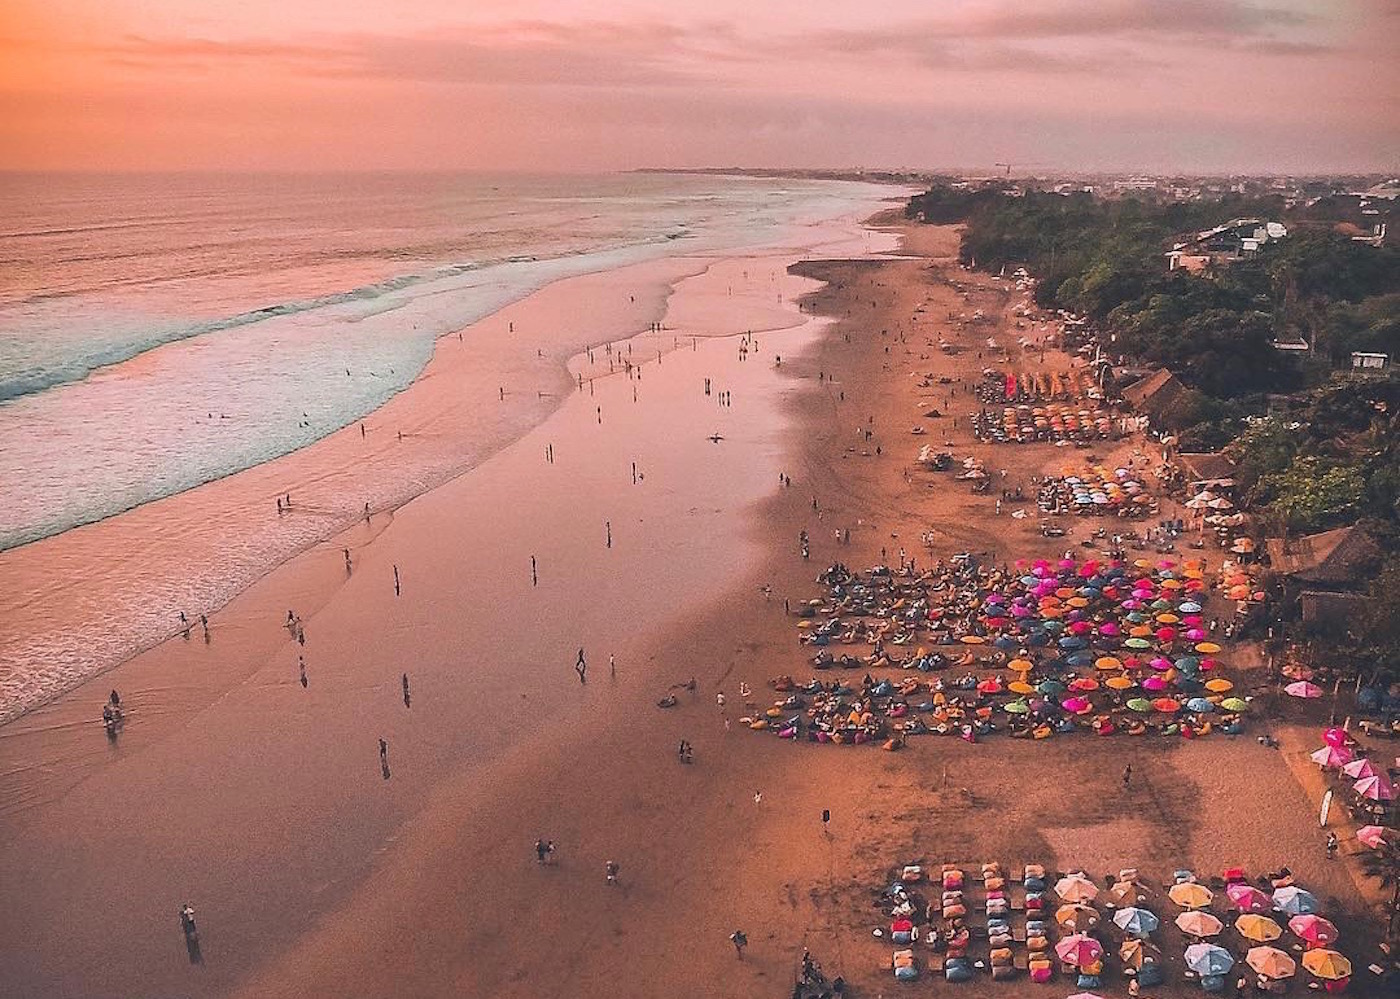 https://d22ir9aoo7cbf6.cloudfront.net/wp-content/uploads/sites/4/2019/07/SEMINYAK-BEACH-SUNSET-BEST-BEACHES-IN-BALI-INDONESIA.jpg